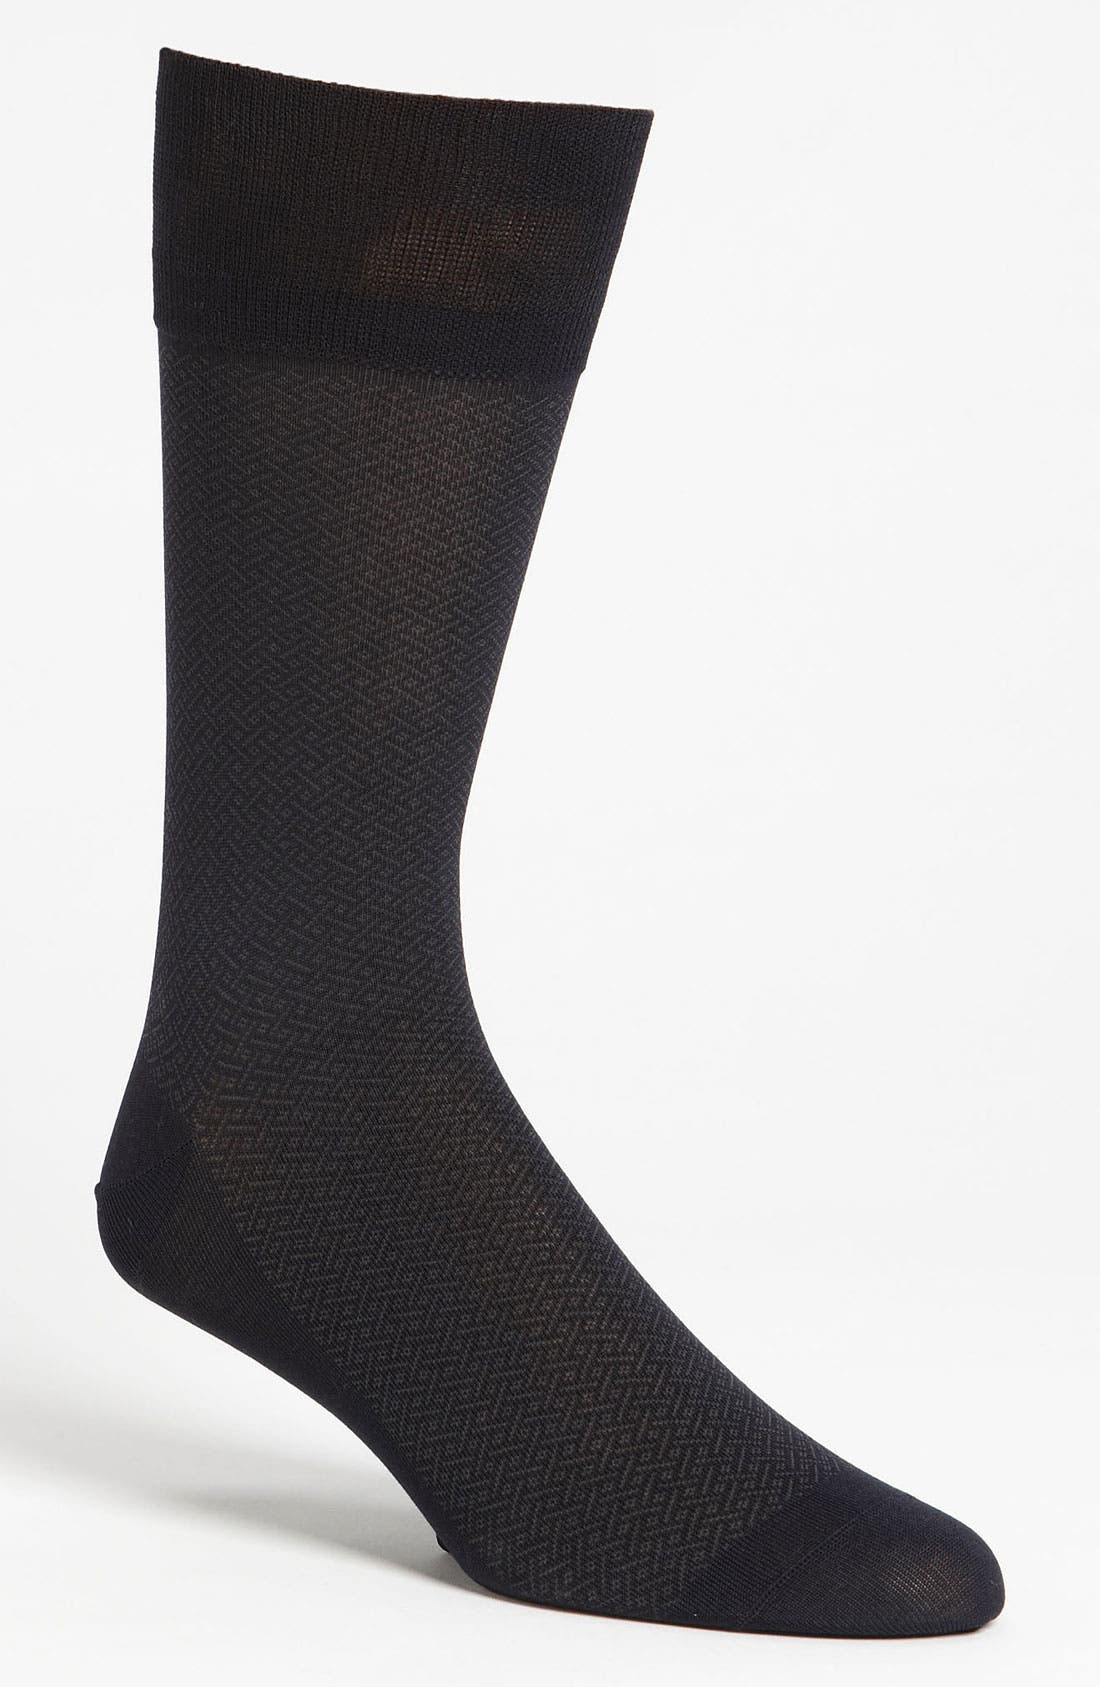 Alternate Image 1 Selected - John W. Nordstrom® Basket Weave Socks